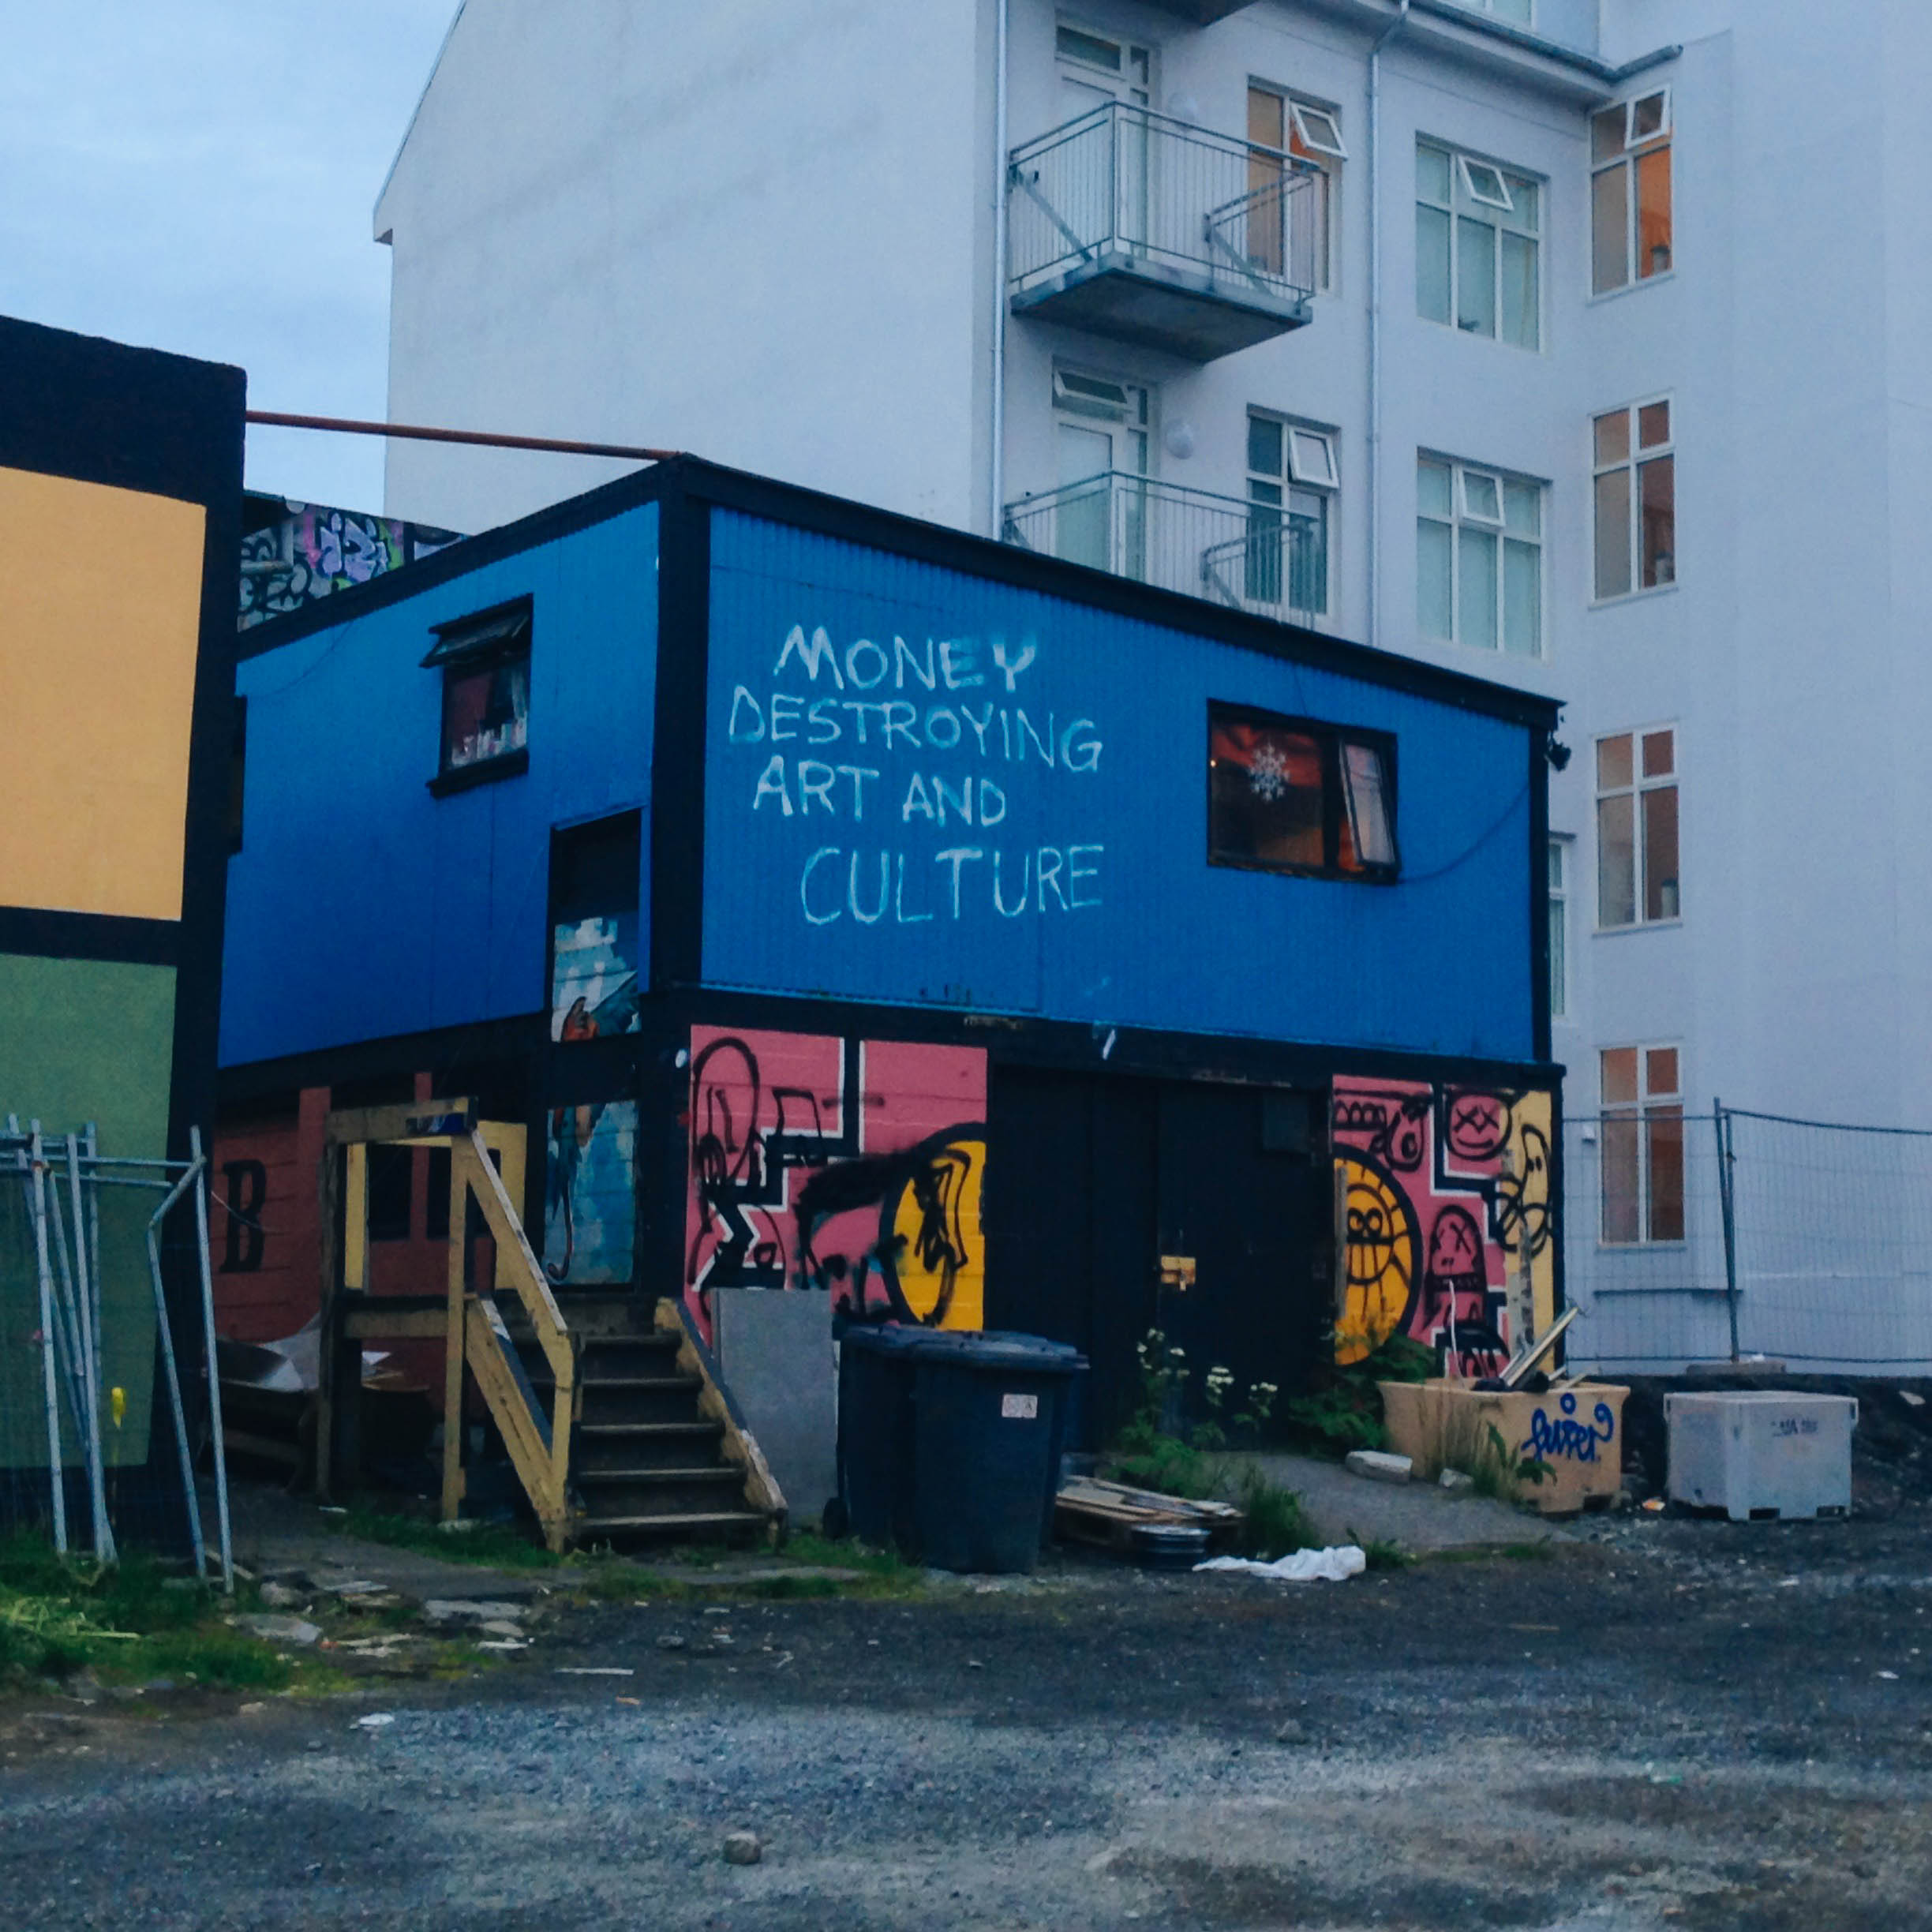 reykjavik has the best street art